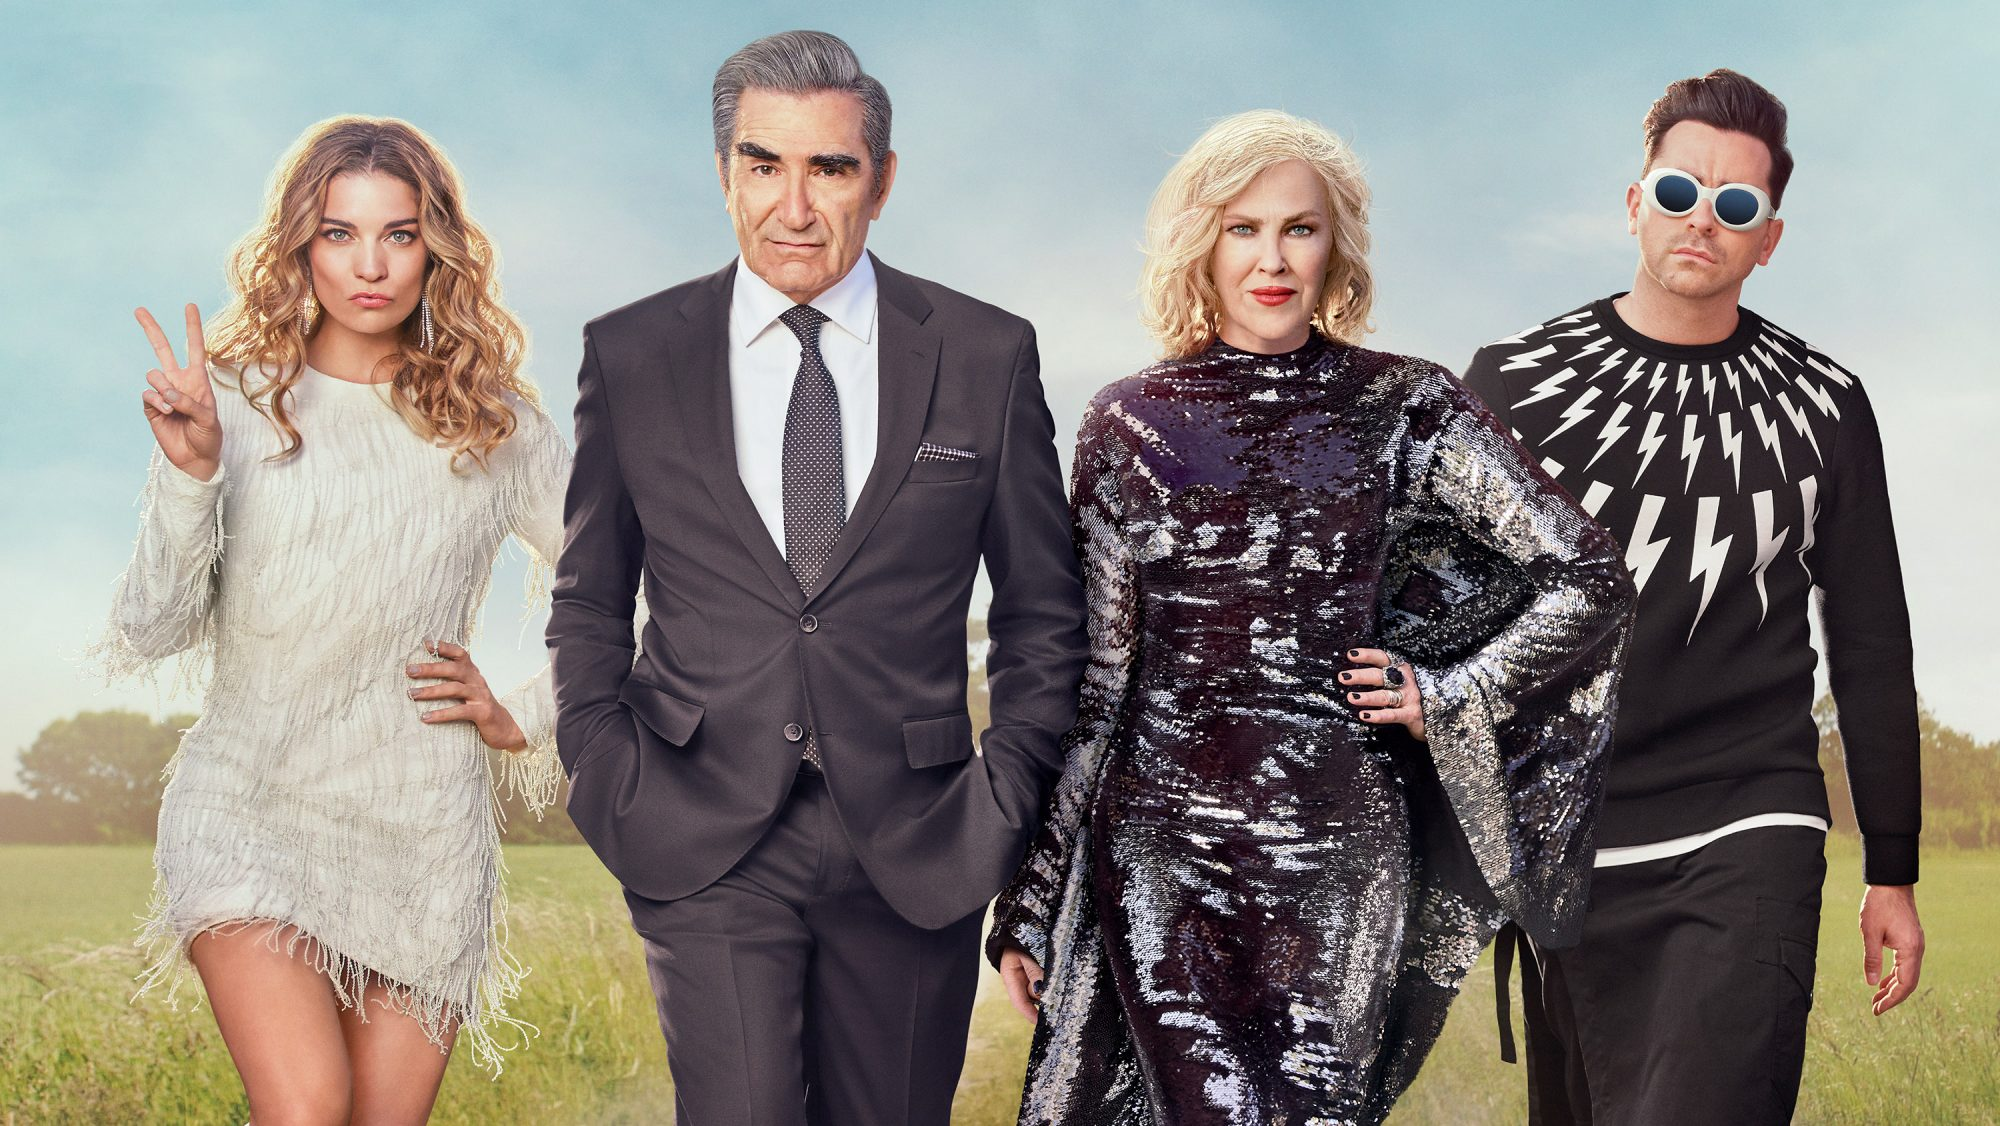 Best good shows to watch on Netflix right now in December - list and trailers (Schitt's Creek tout)